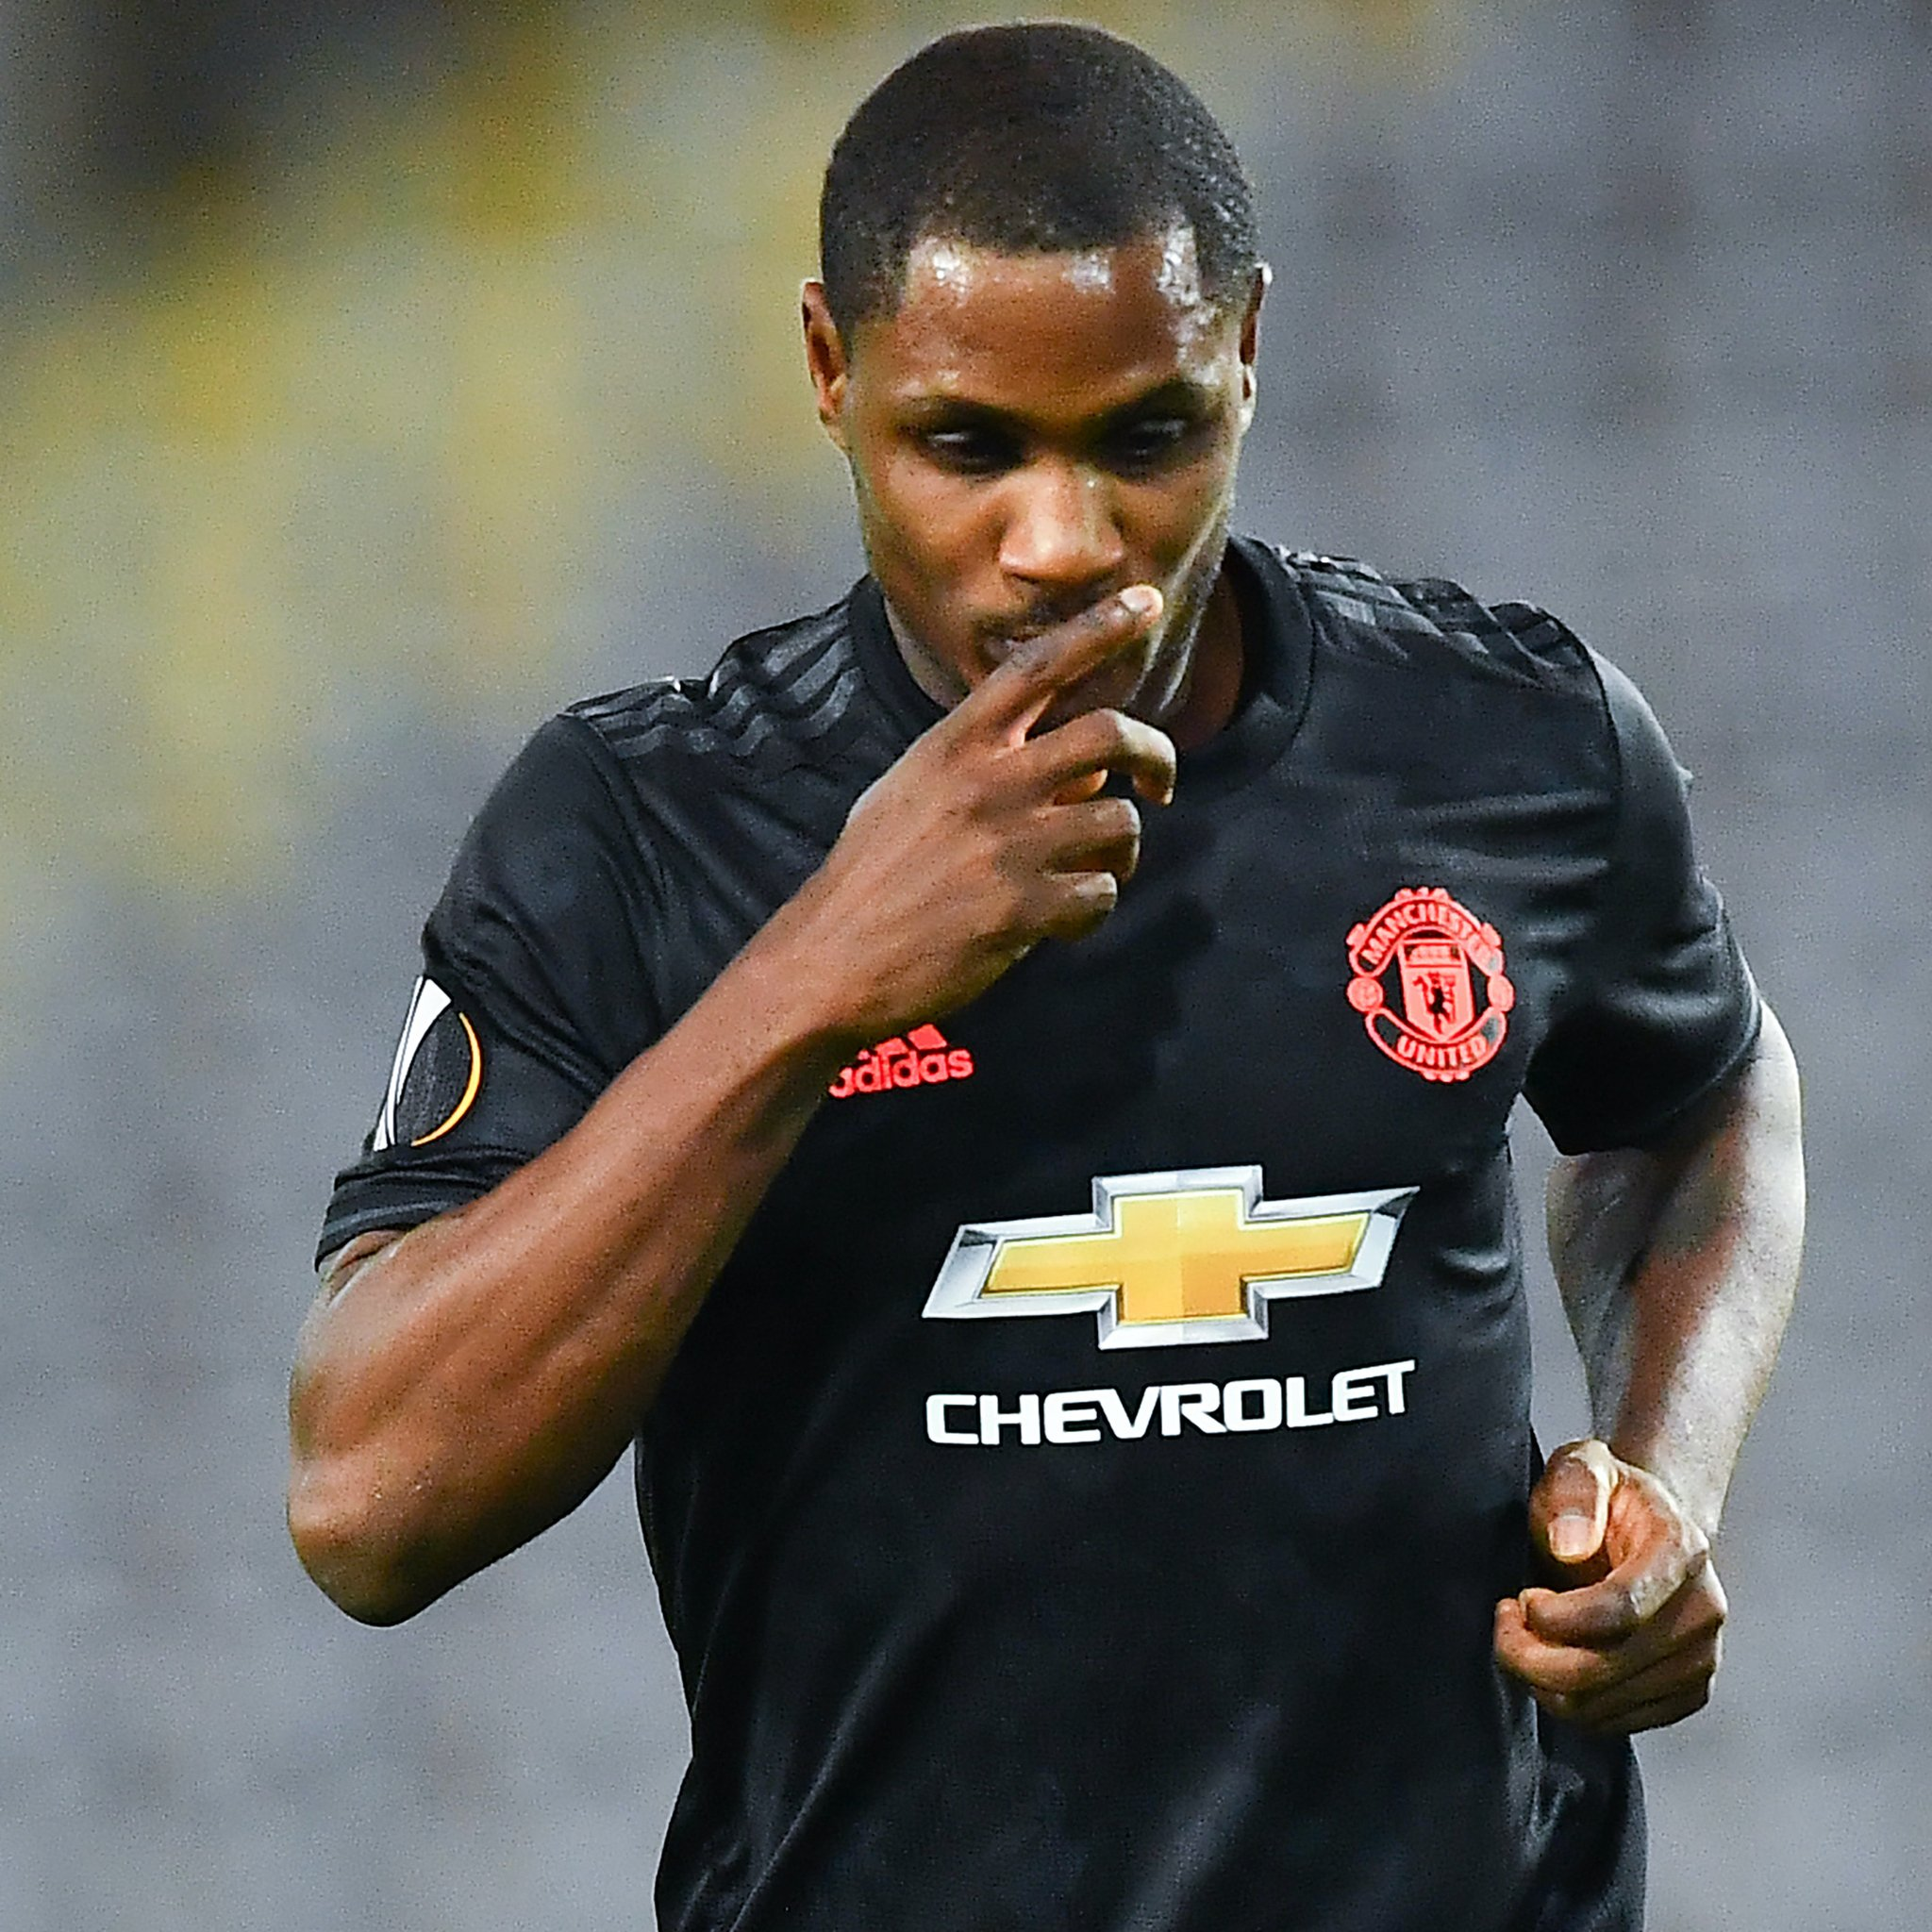 Man Utd Boss Solskjaer Hints At Ighalo Permanent Transfer After Wonder Goal In LASK win